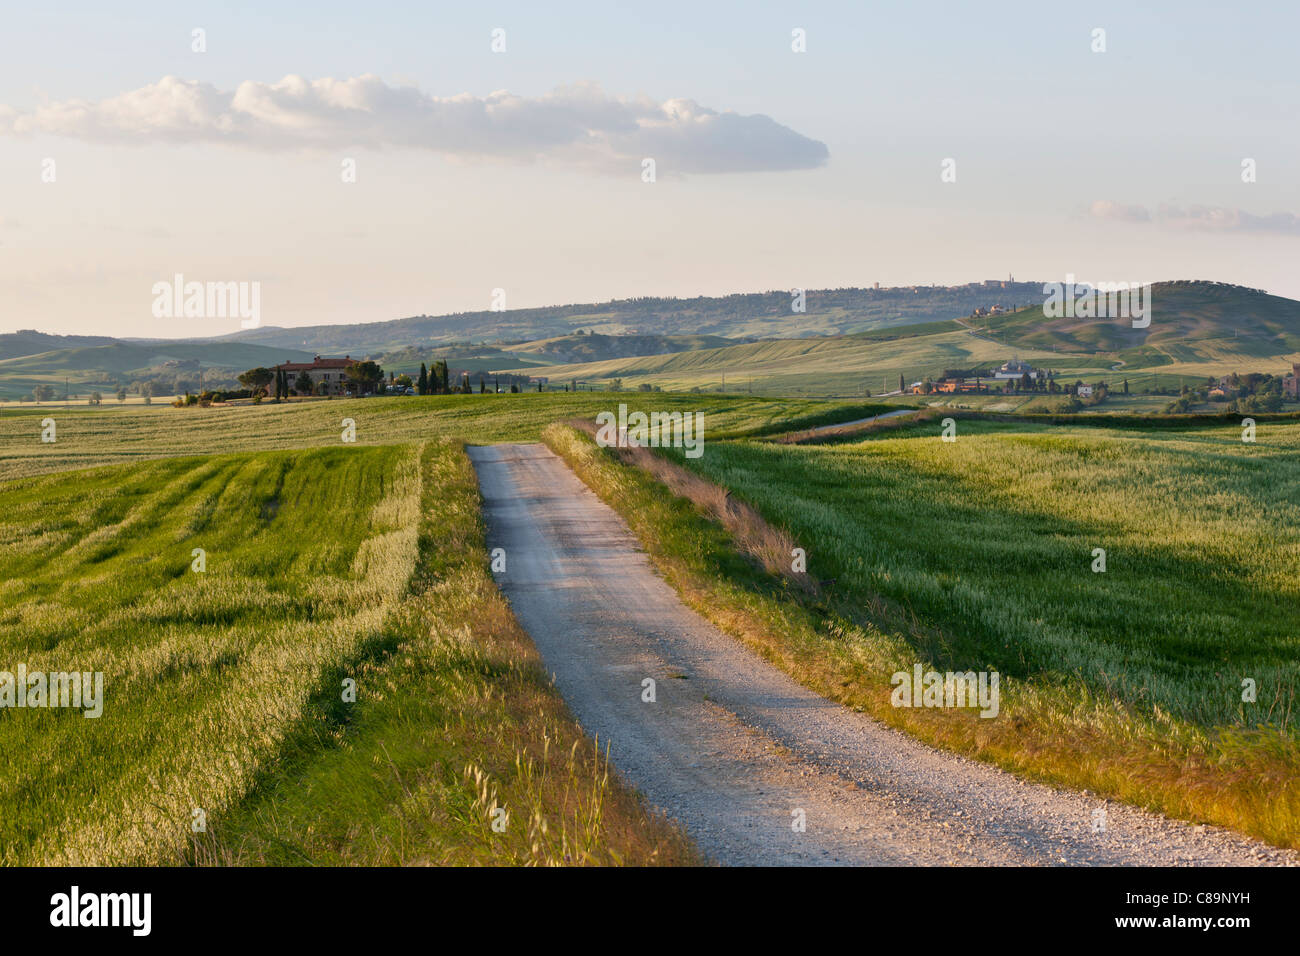 Italy, Tuscany, Crete, Val d'Orcia, View of path towards farm - Stock Image